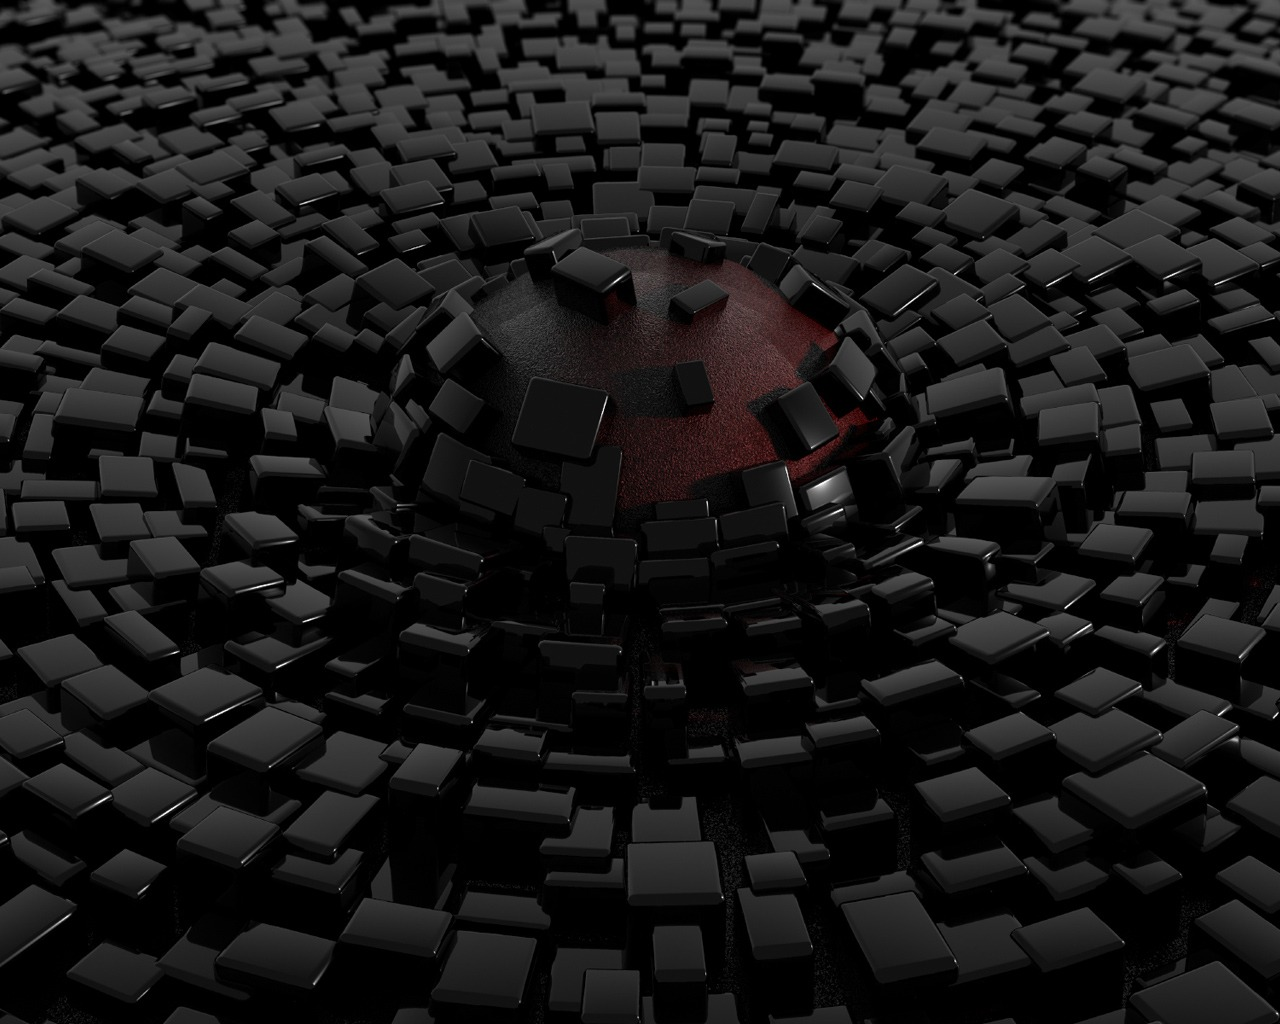 3d abstract black blocks hd wallpaper hd wallpapers for Black block